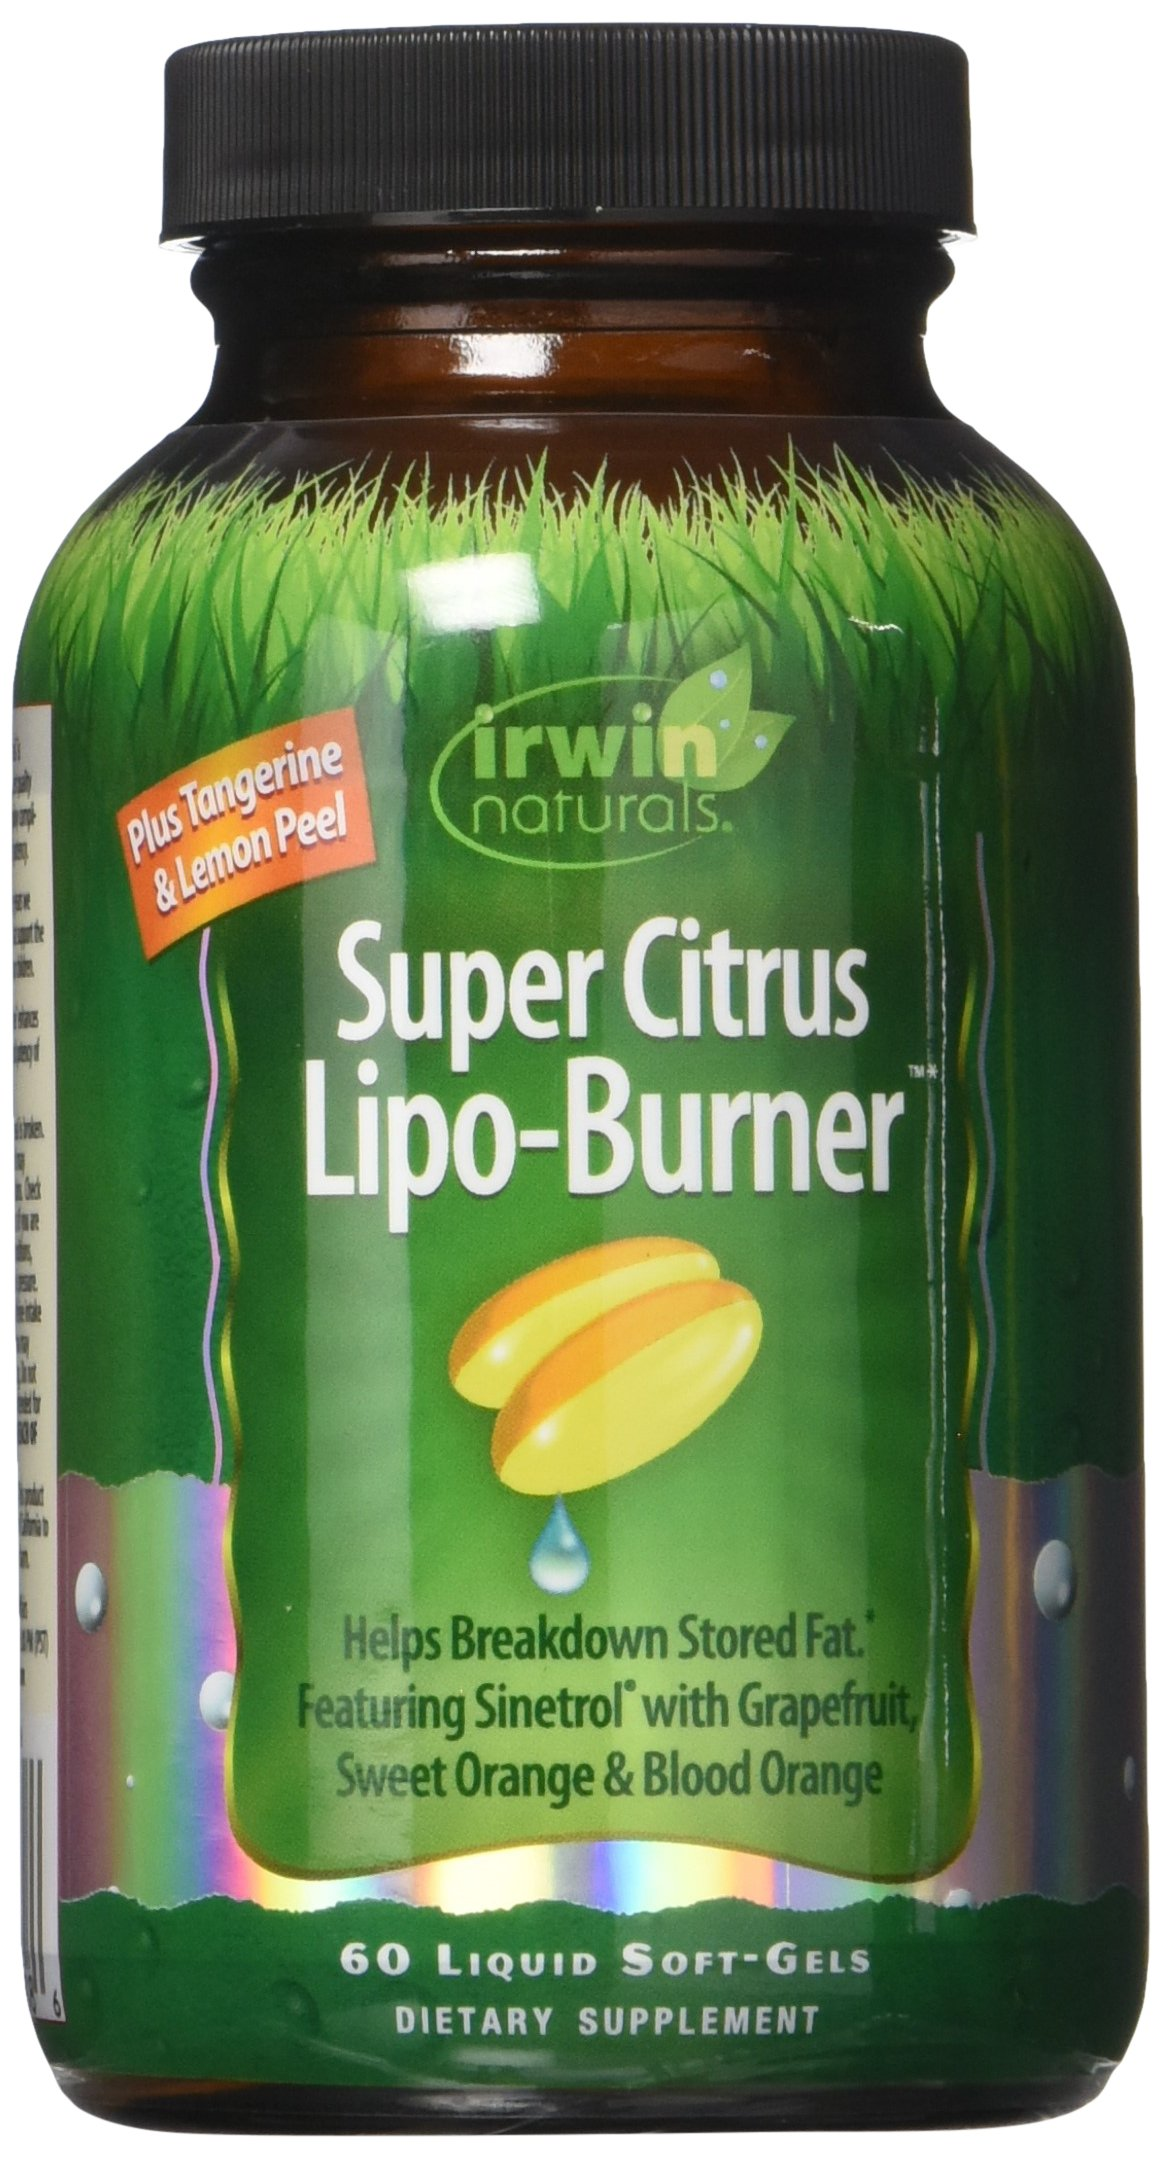 Super Citrus Lipo-Burner by Irwin Naturals, Featuring Sinetrol and Grapefruit, 60 Liquid Softgels